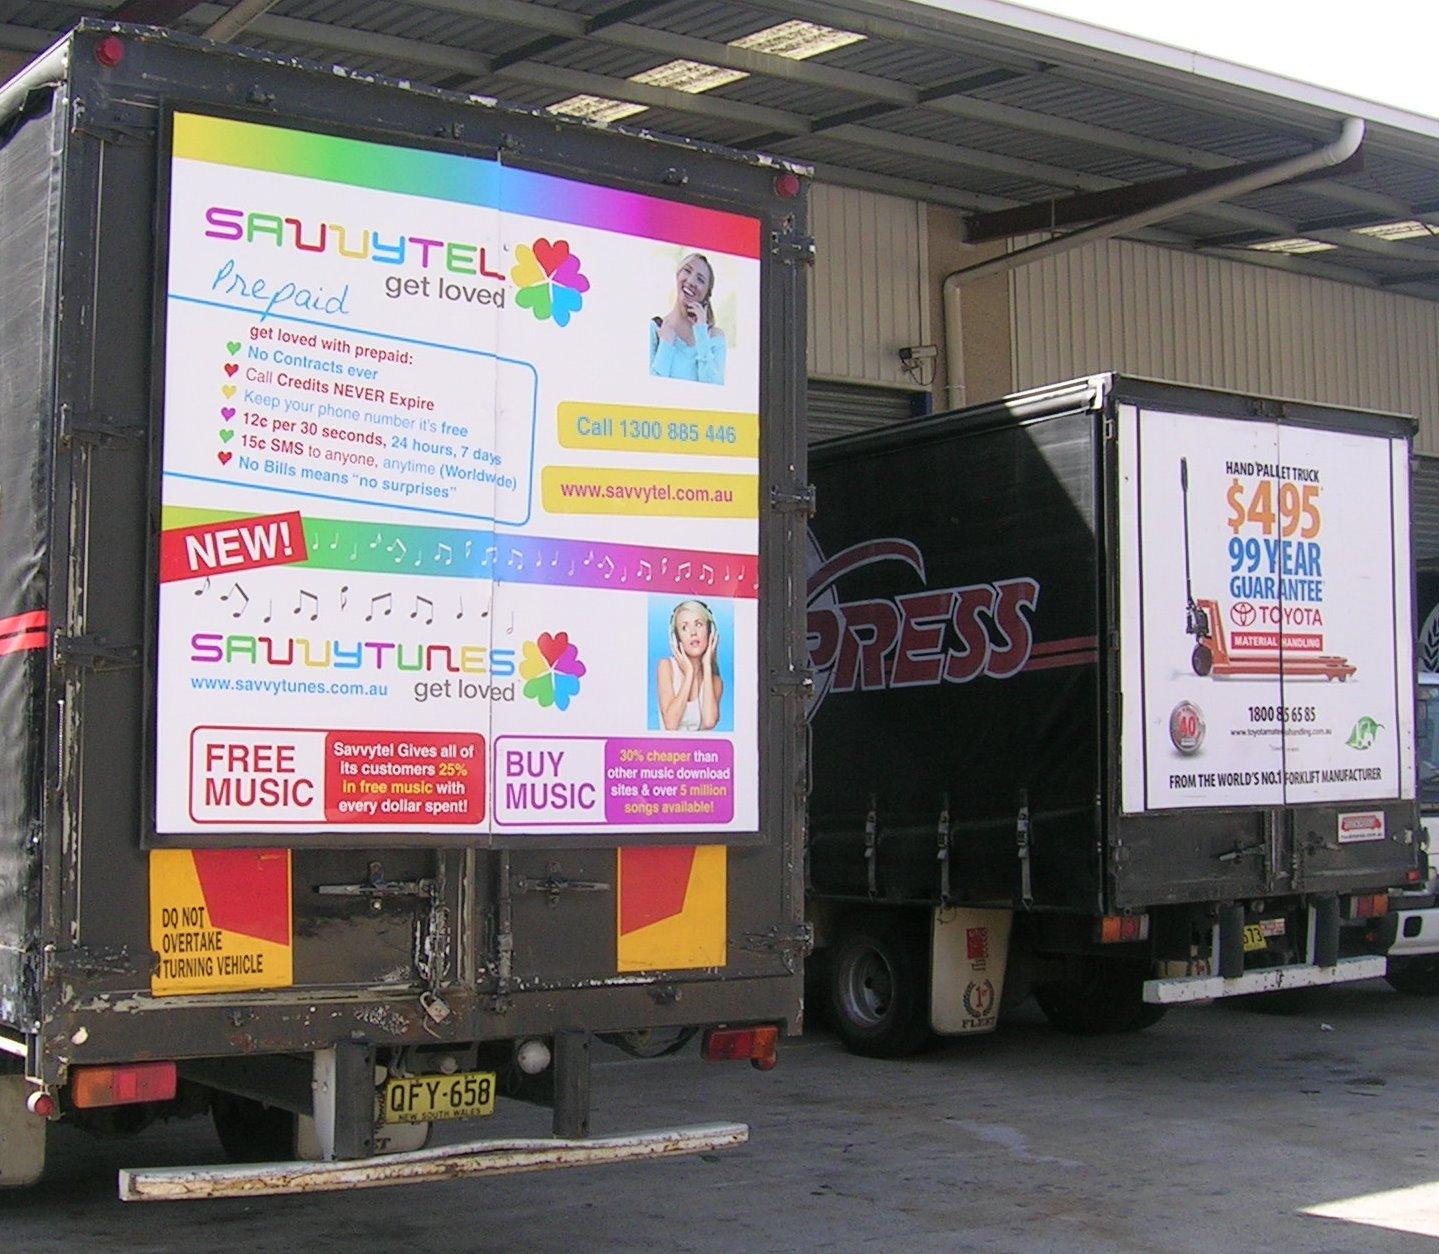 Truck advertising. TMHA Toyota Material Handling Australia TruckBack on First Fleet rigid. Frame. Hand pallet truck campaign. Savvytel Music campaign. Frame. First Fleet rigid.